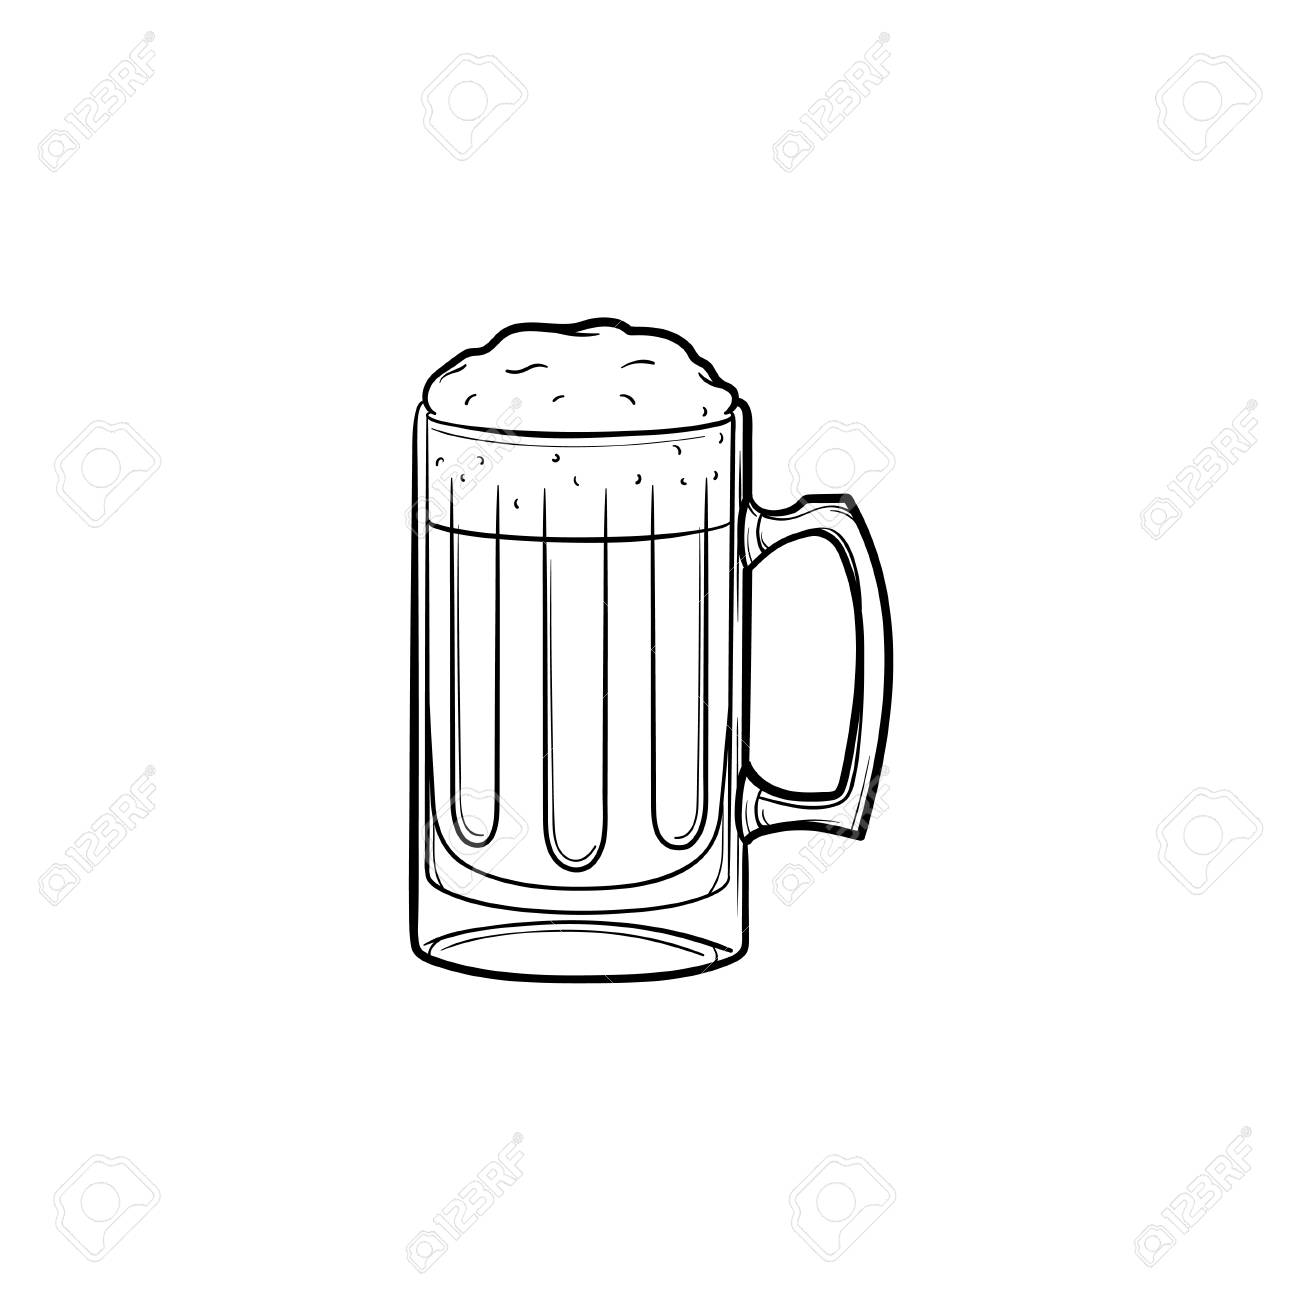 Mug Of Beer Hand Drawn Outline Doodle Icon Vector Sketch Illustration Royalty Free Cliparts Vectors And Stock Illustration Image 97118480